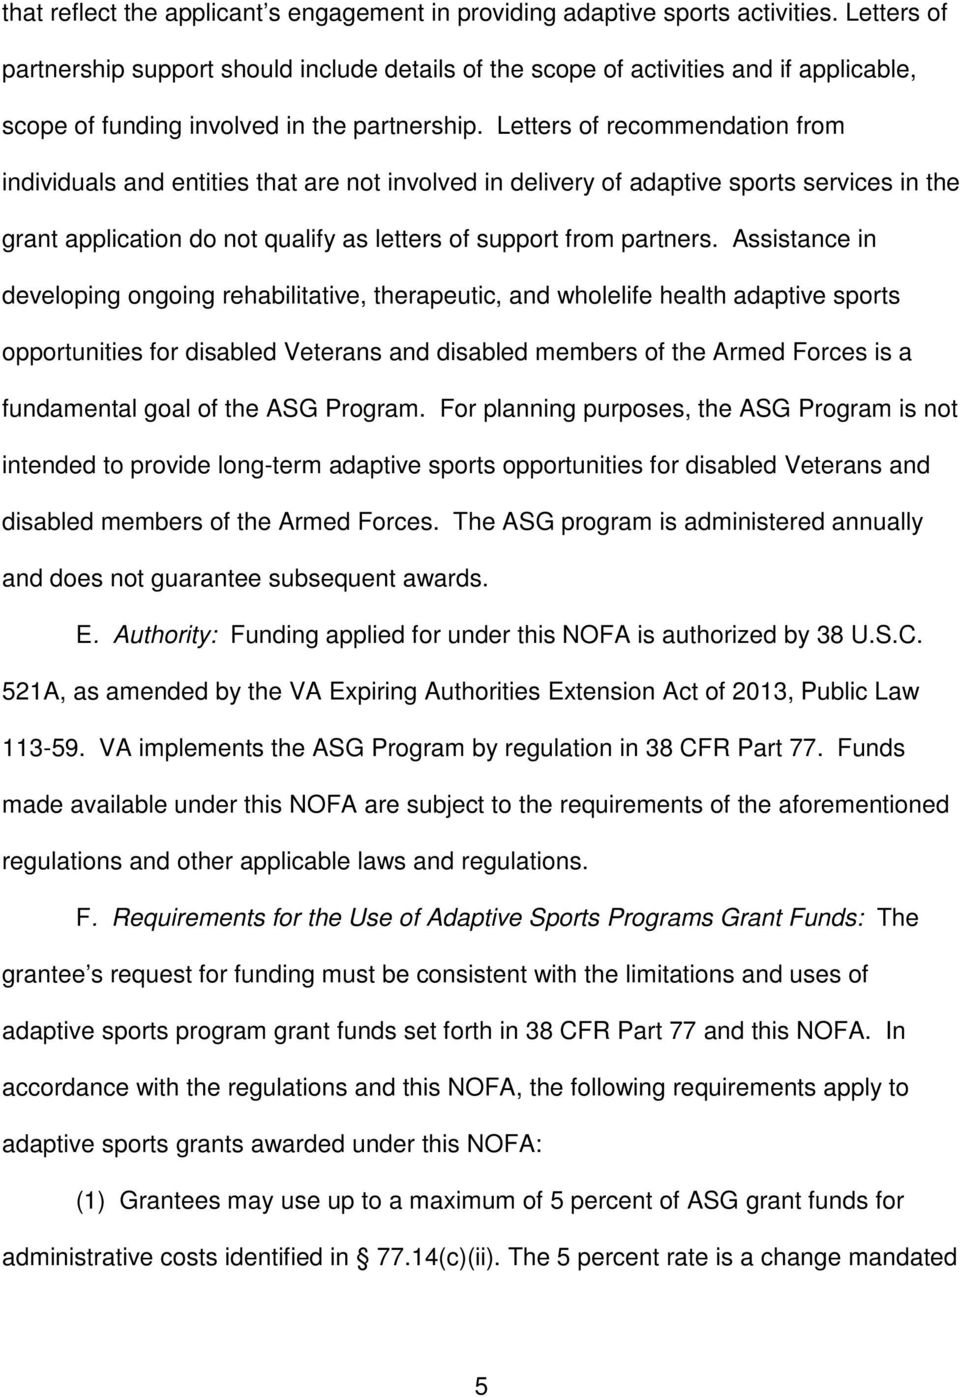 Letters of recommendation from individuals and entities that are not involved in delivery of adaptive sports services in the grant application do not qualify as letters of support from partners.